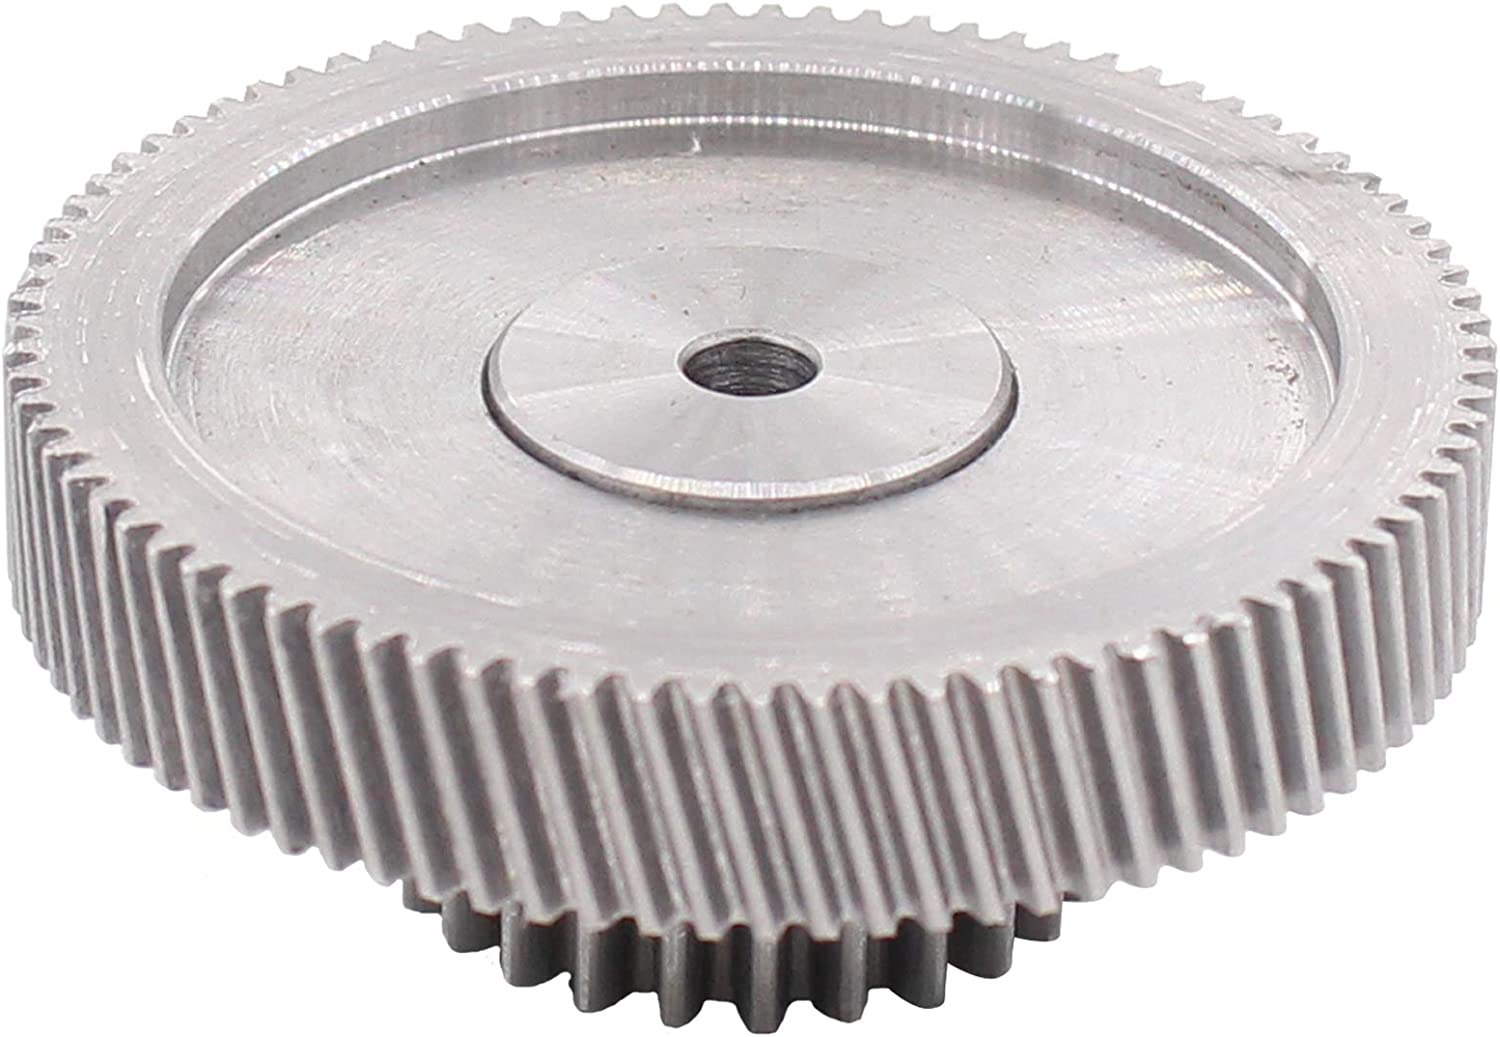 XtremeAmazing Slide Out Motor Gear 18:1 Ratio Venture Actuator Compatible with RV Lippert Tuson 014-191072 191072